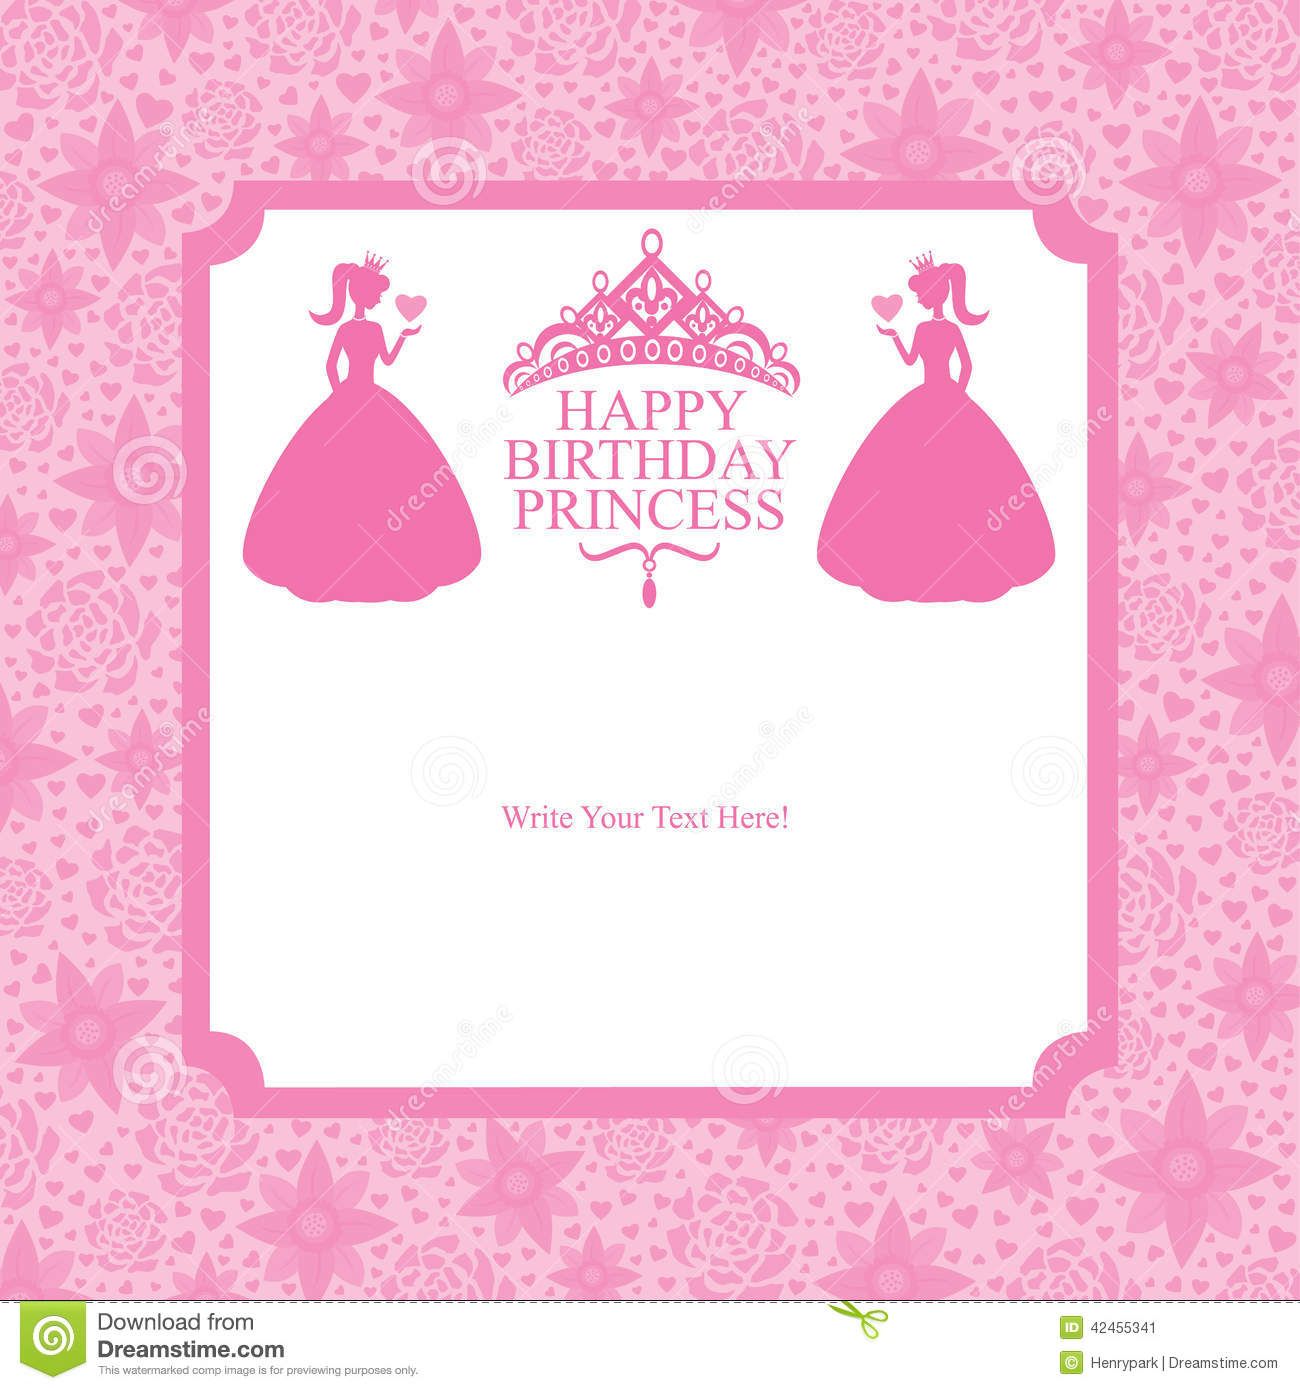 birthday princess card design stock vector  image, Birthday card